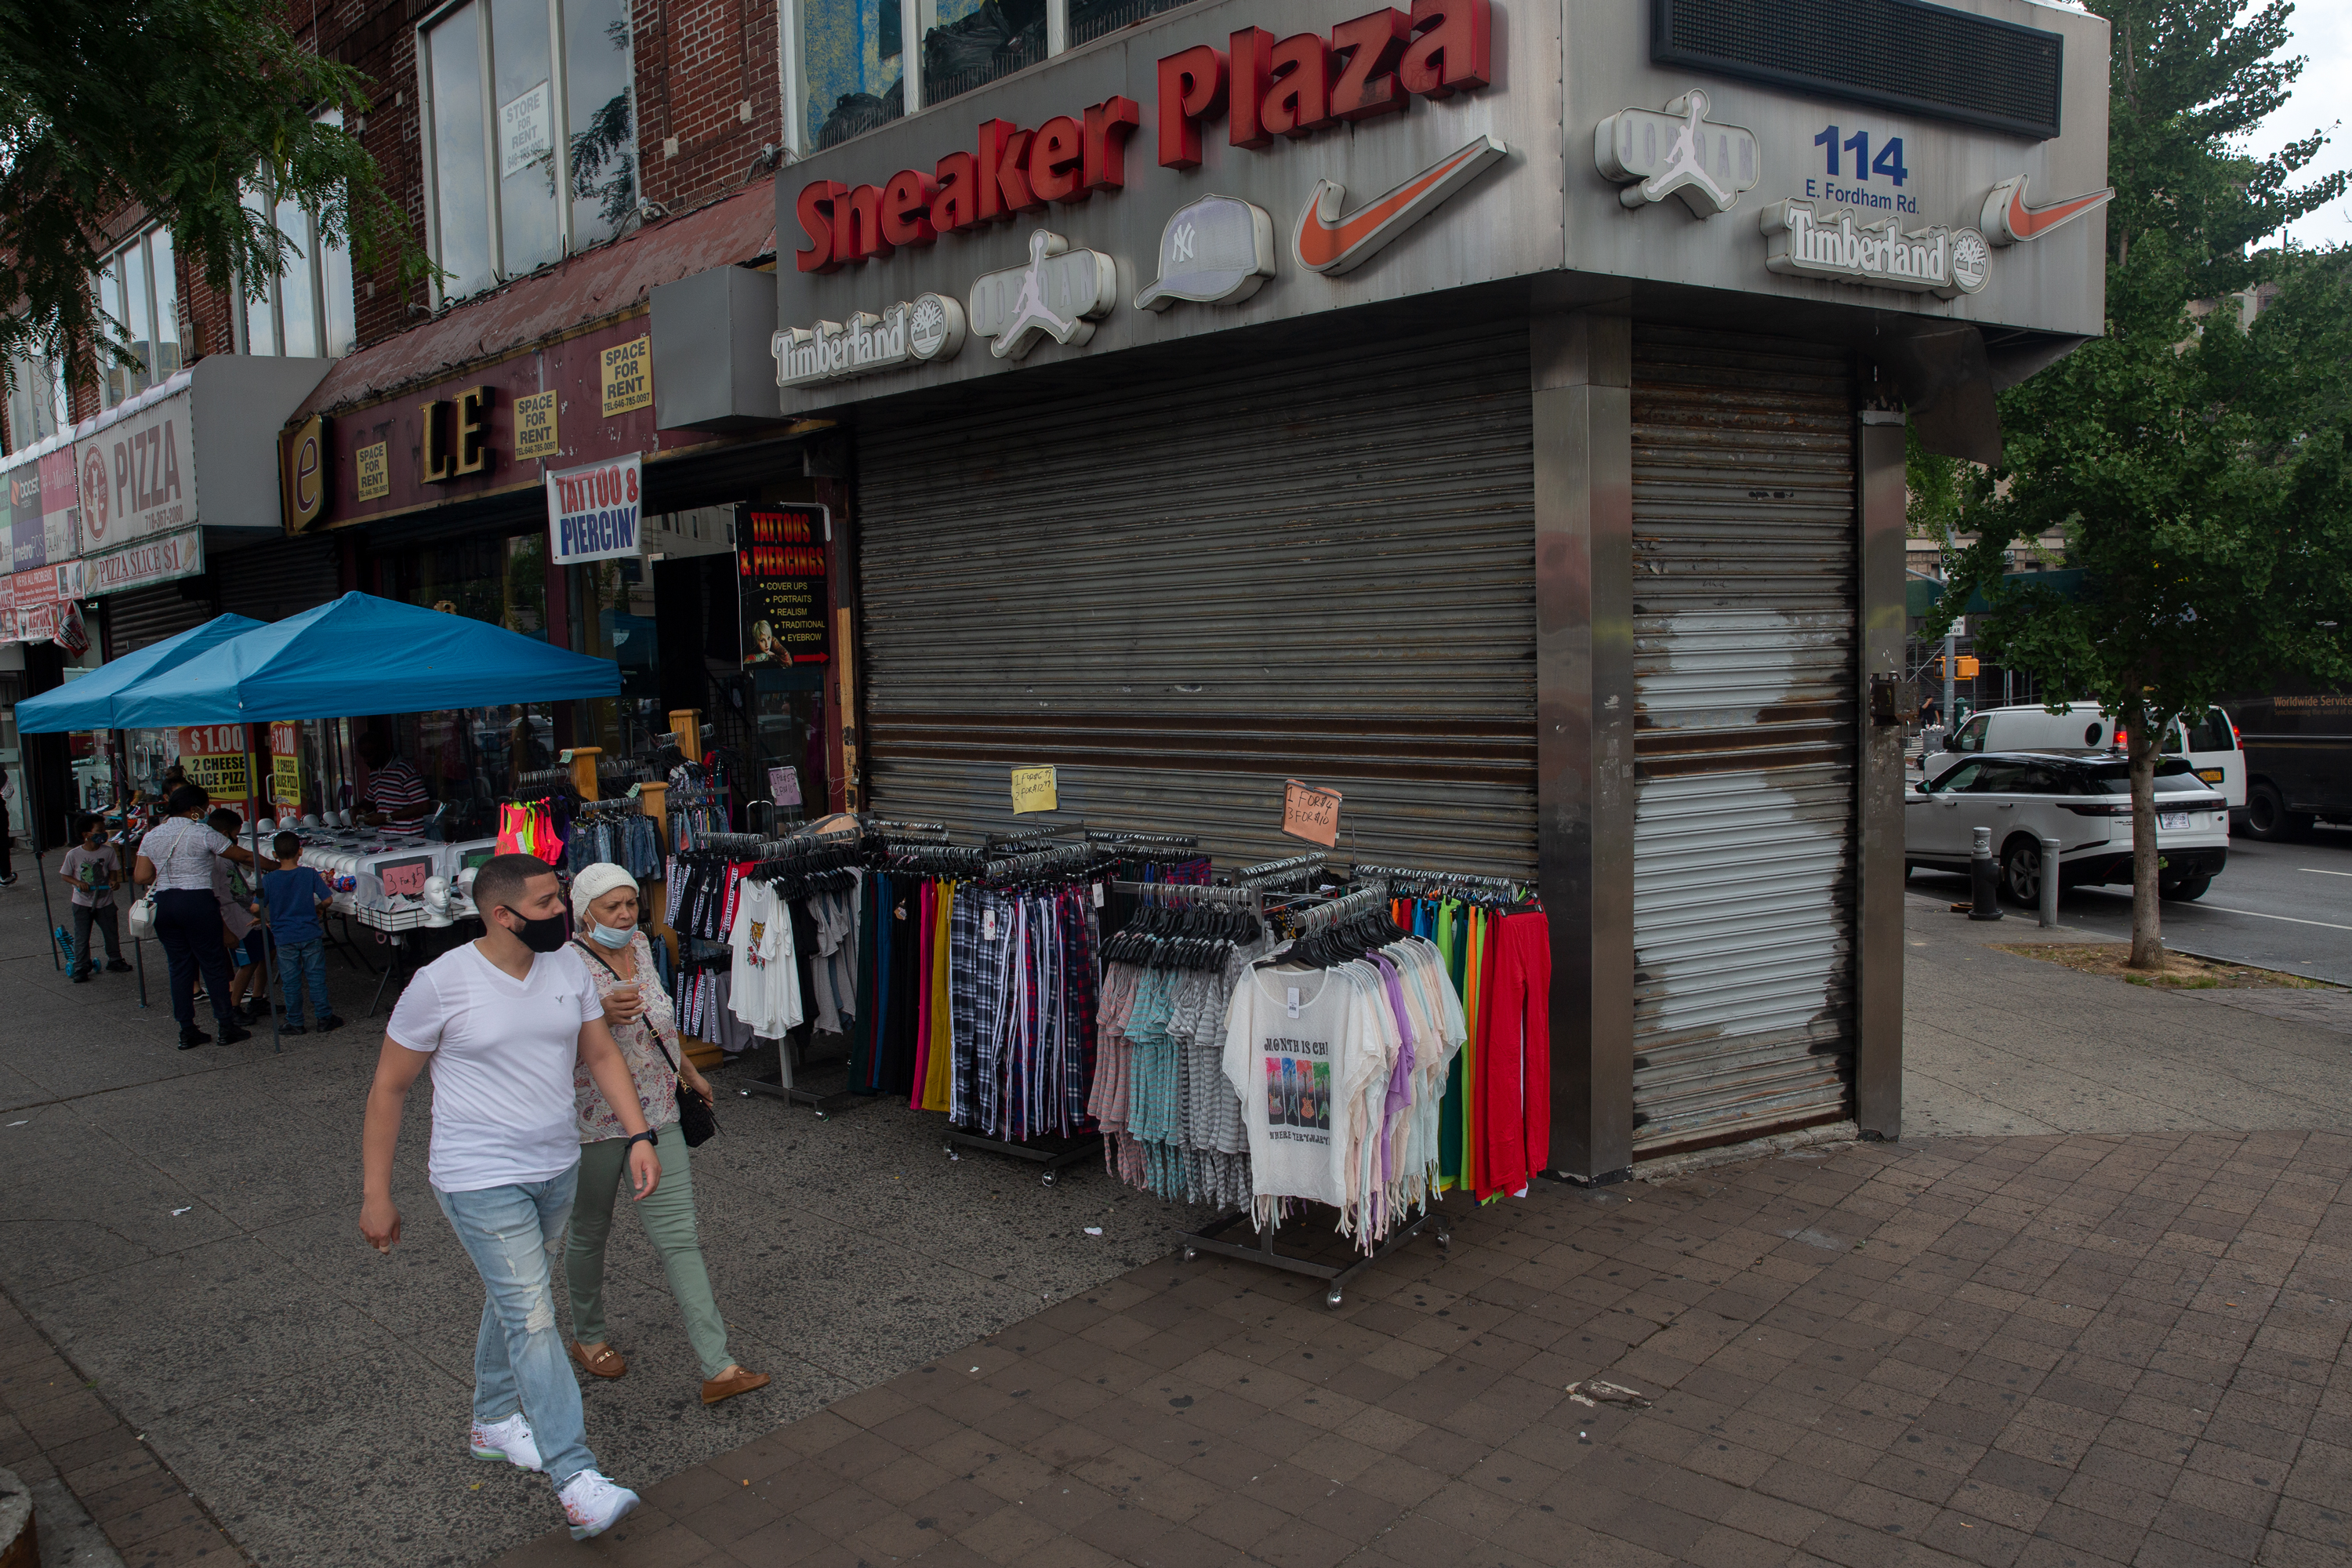 Sneaker Plaza on East Fordham Road was looted after anti-police brutality protests.